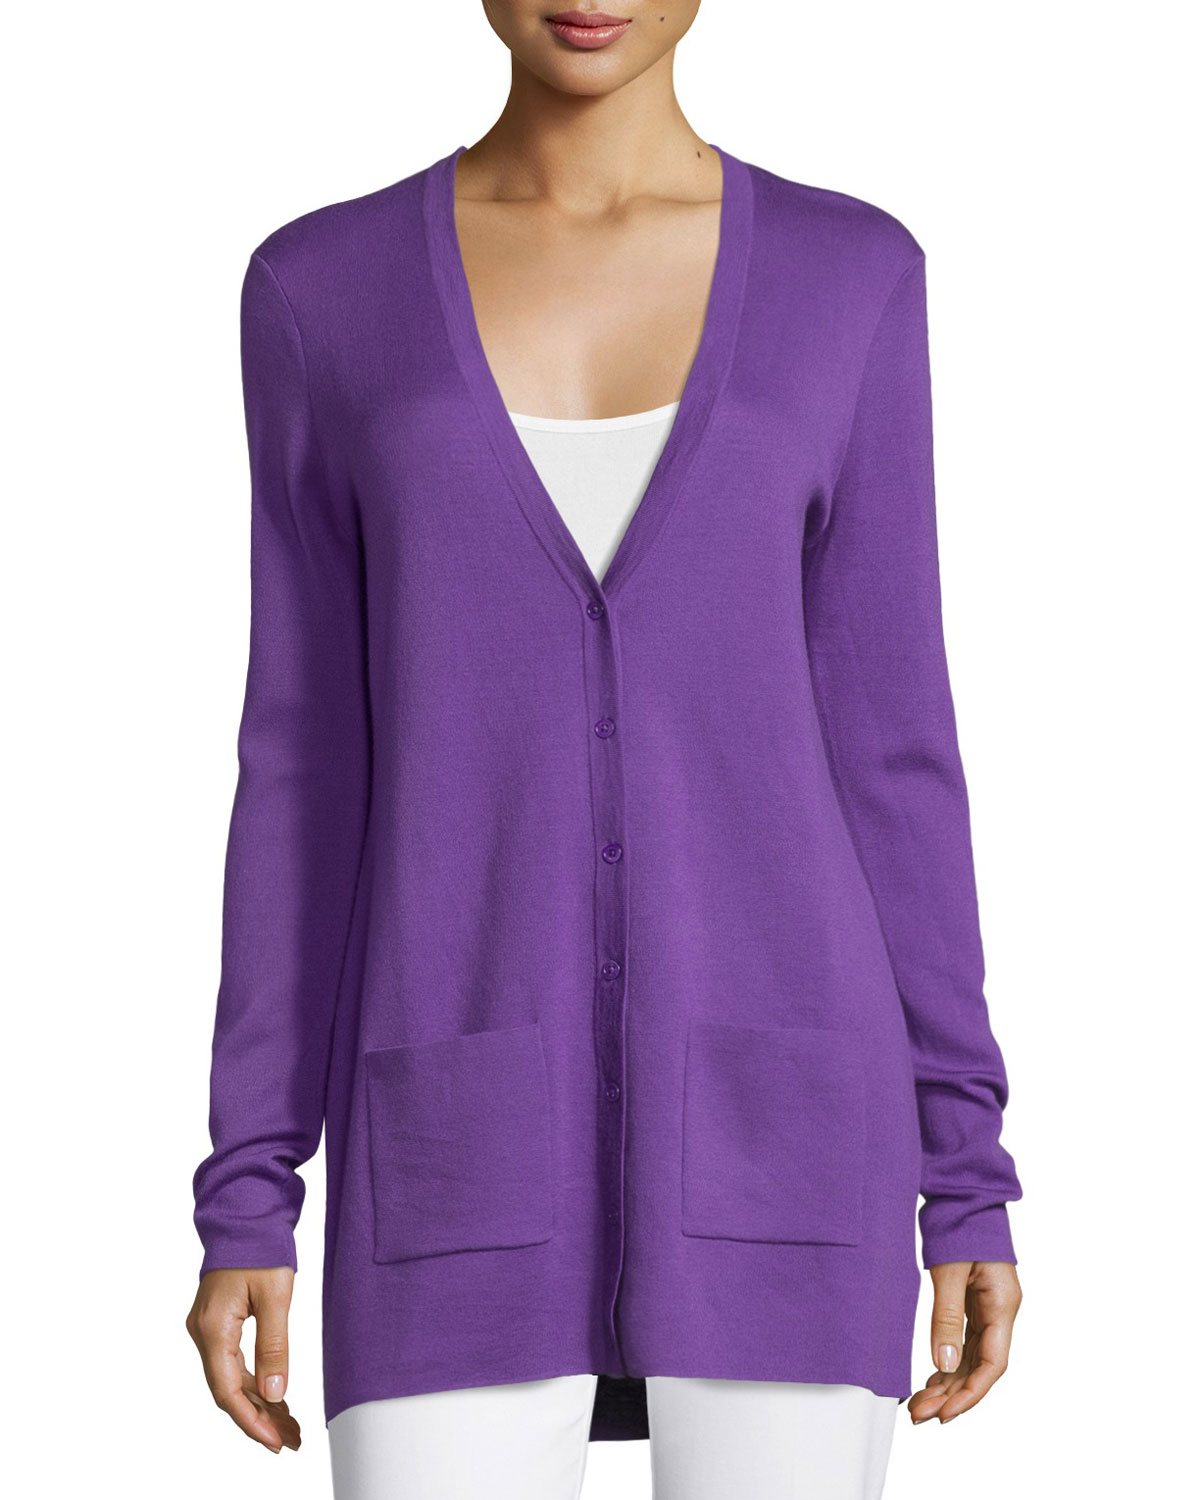 Button-Front Cashmere Cardigan W/Pockets, Lilac